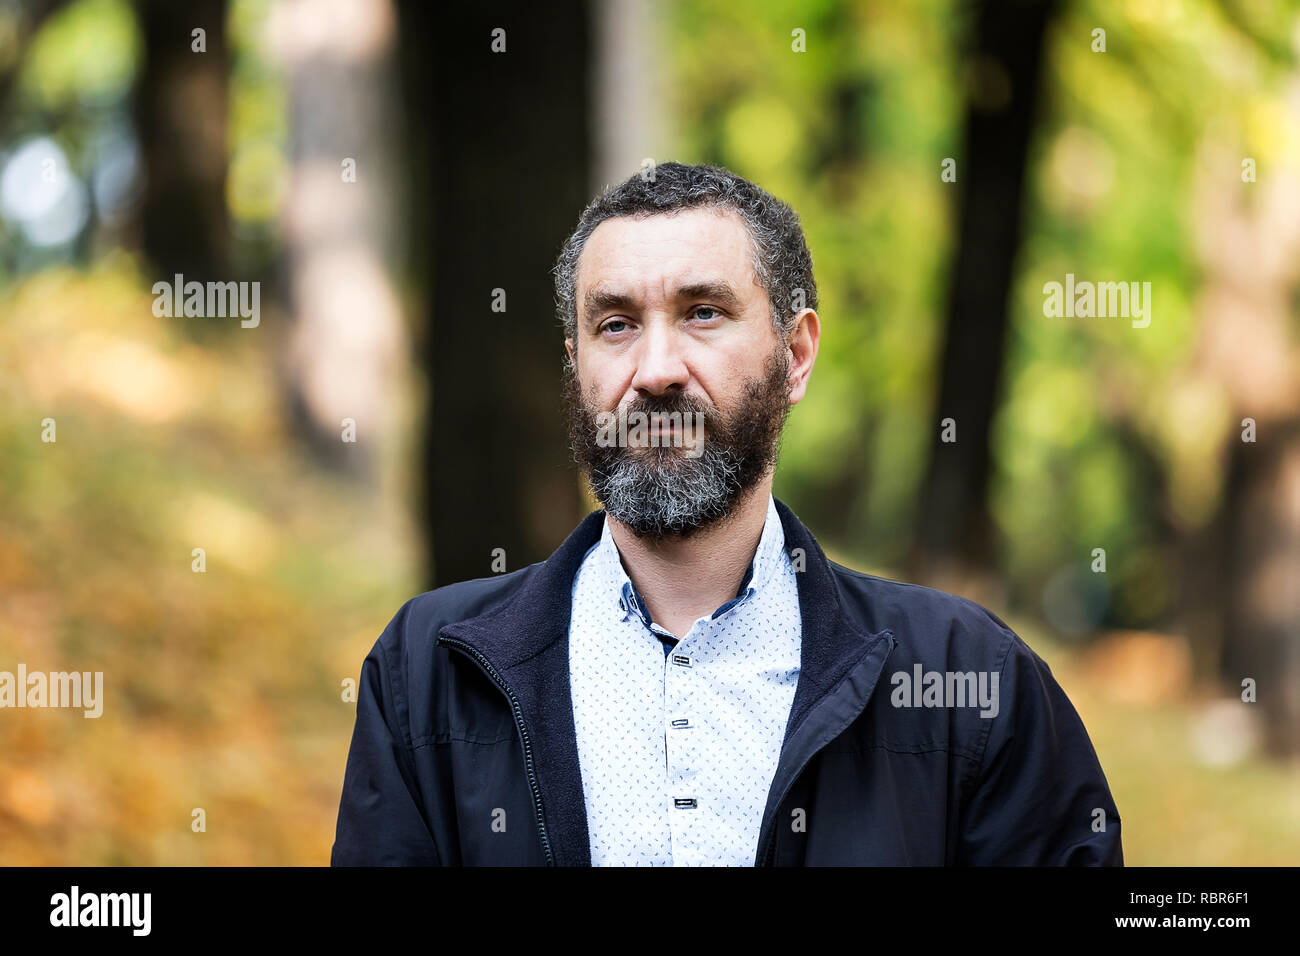 Portrait of handsome 40 year old man with curly hair and grizzled. - Stock Image